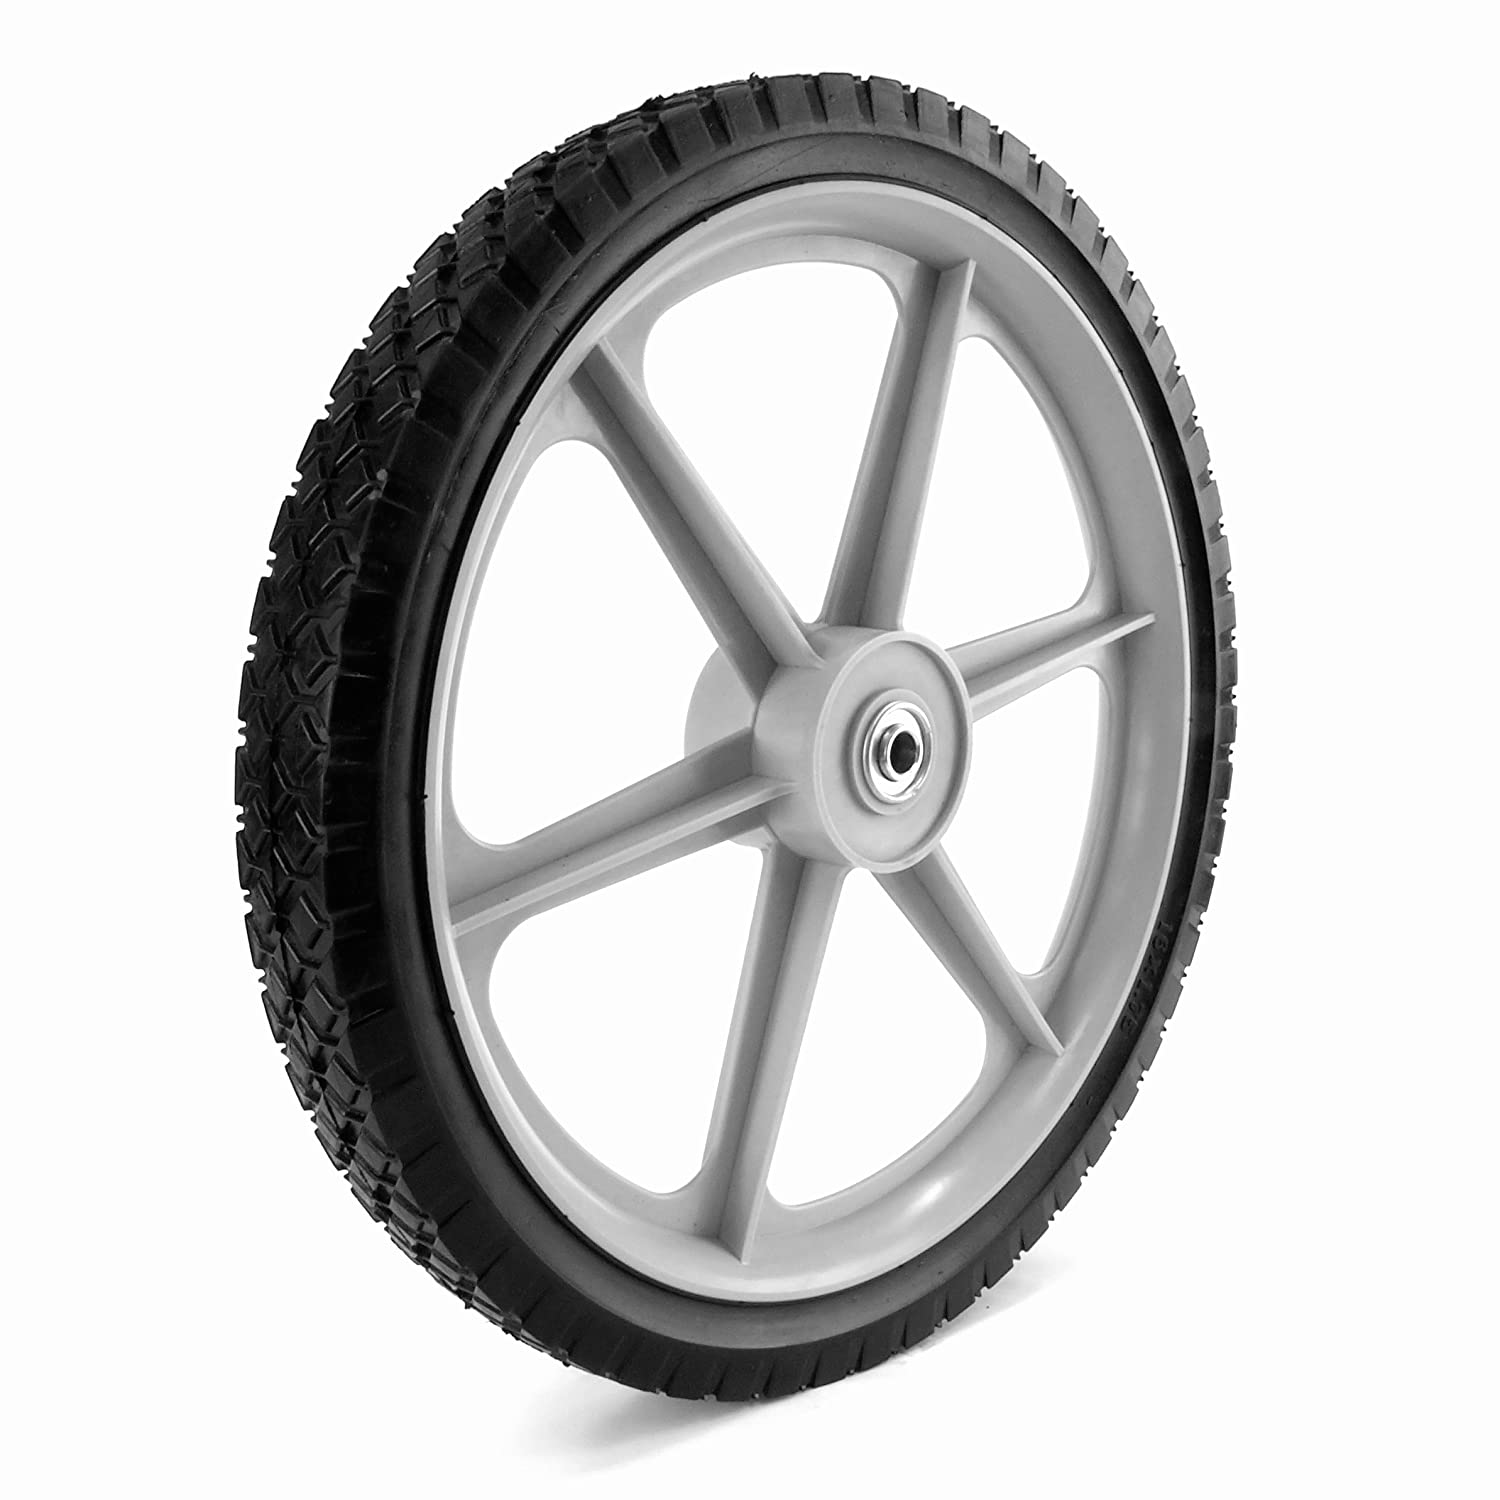 Martin Wheel PLSP16D175 16 by 1.75-Inch Plastic Spoke Semi-Pneumatic Wheel for Lawn Mower, 1/2-Inch Ball Bearing, 2-3/8-Inch Centered Hub, Diamond Tread